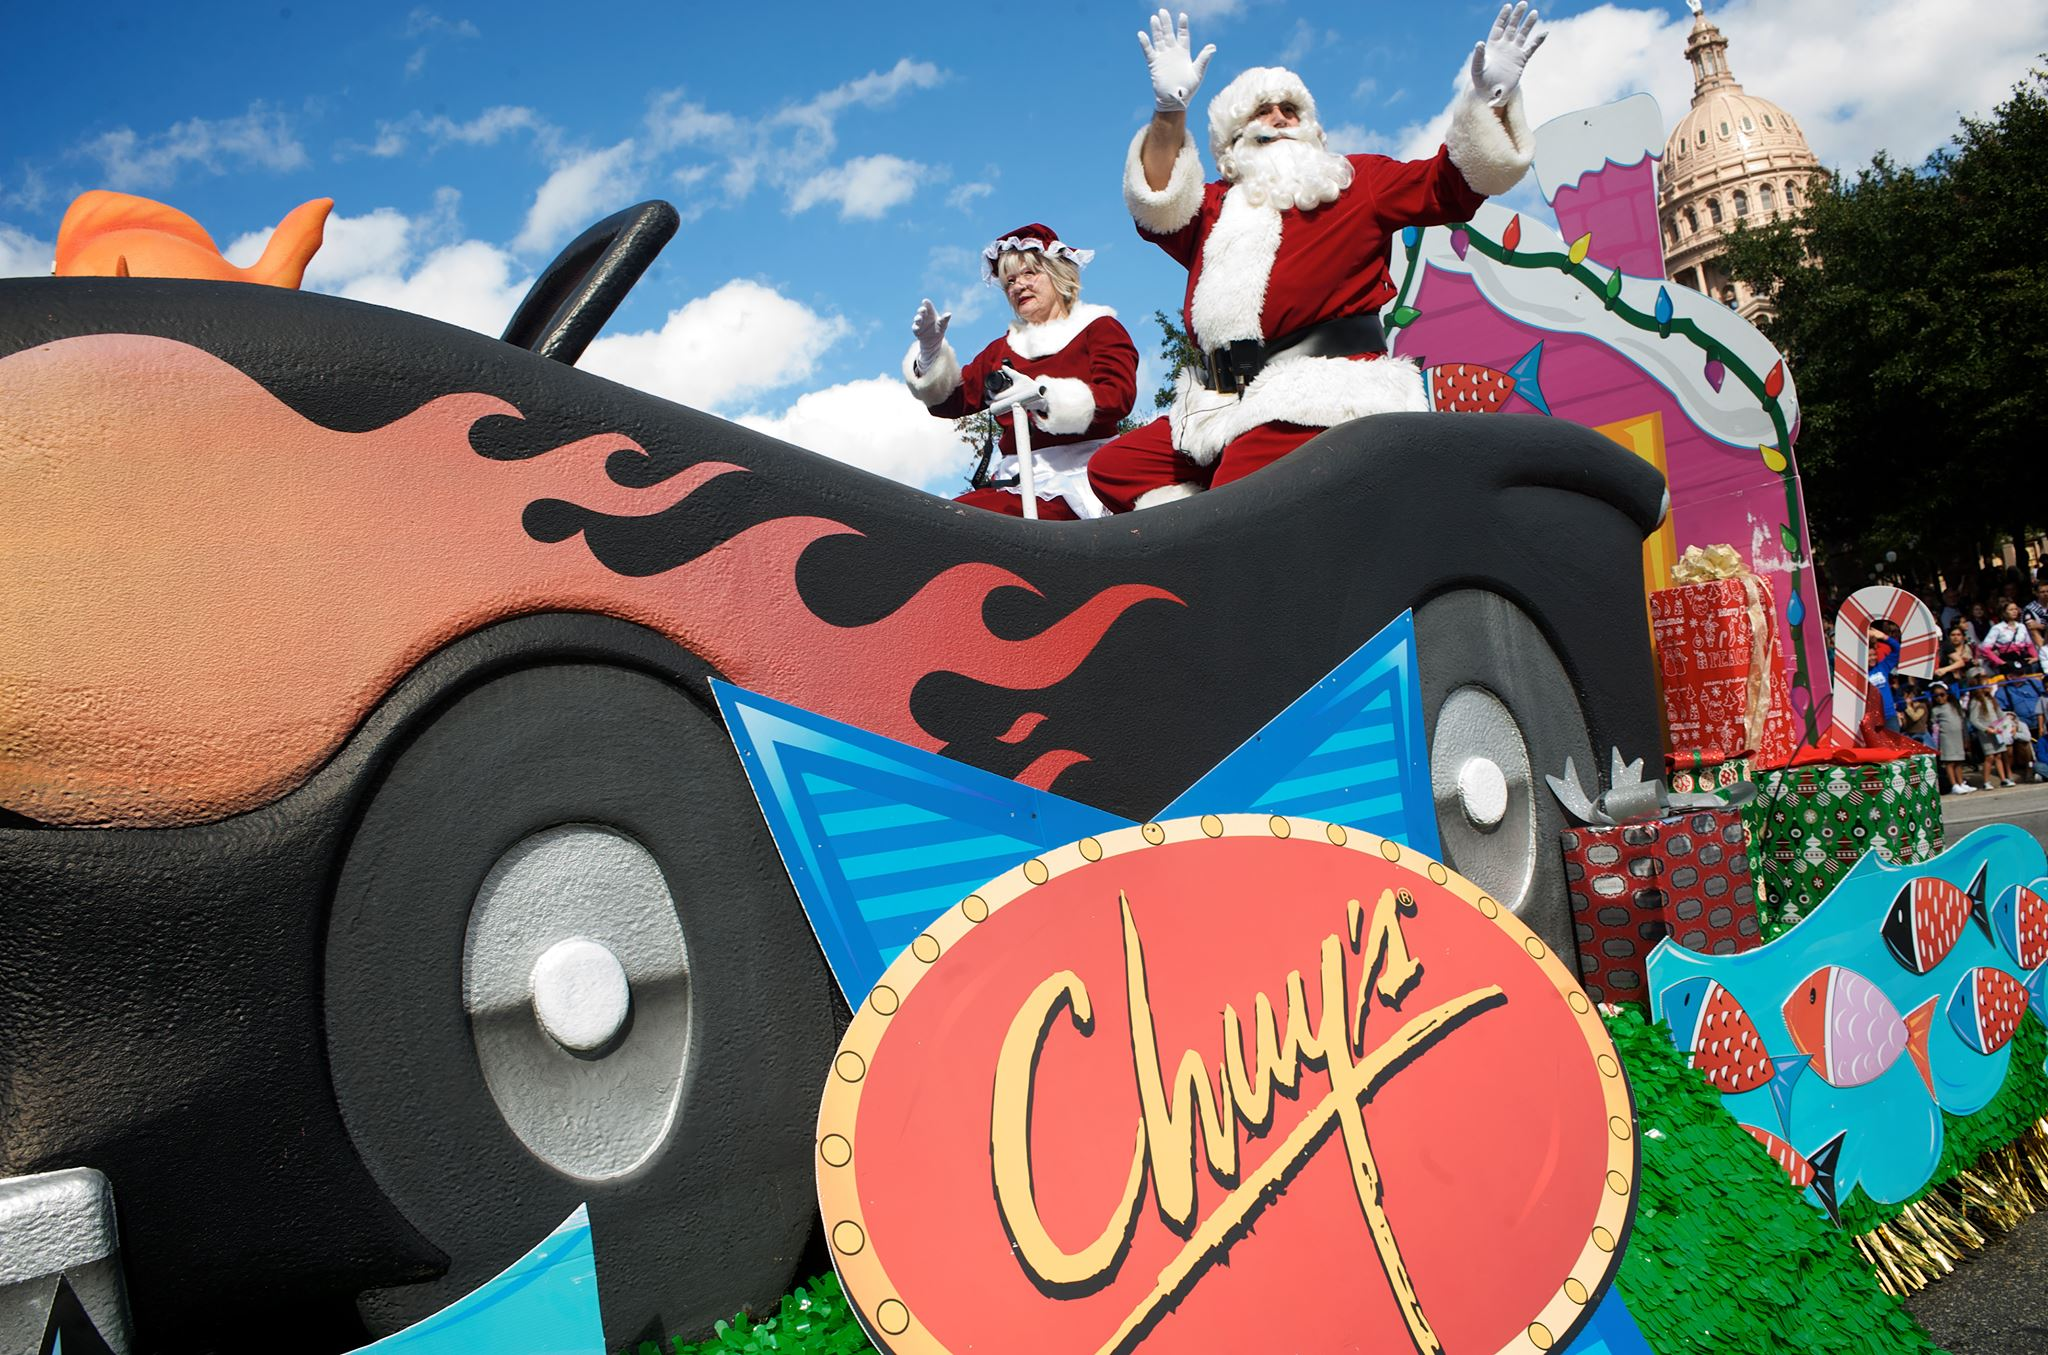 Photo from the Chuy's Children Giving to Children Parade Facebook Page